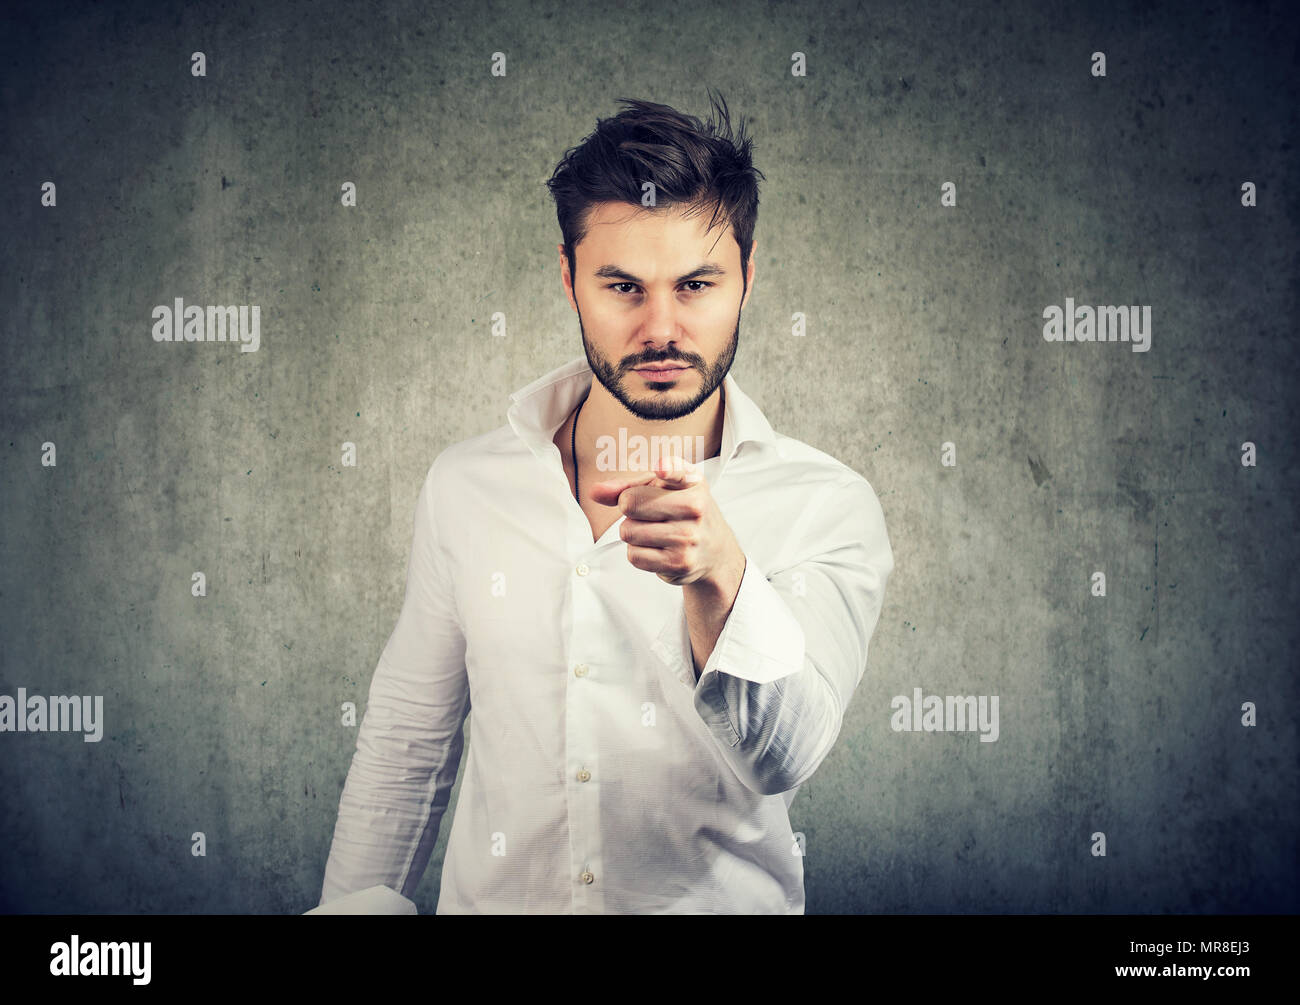 Young blaming man in white shirt pointing with finger at camera indicating person and looking serious on gray background. - Stock Image